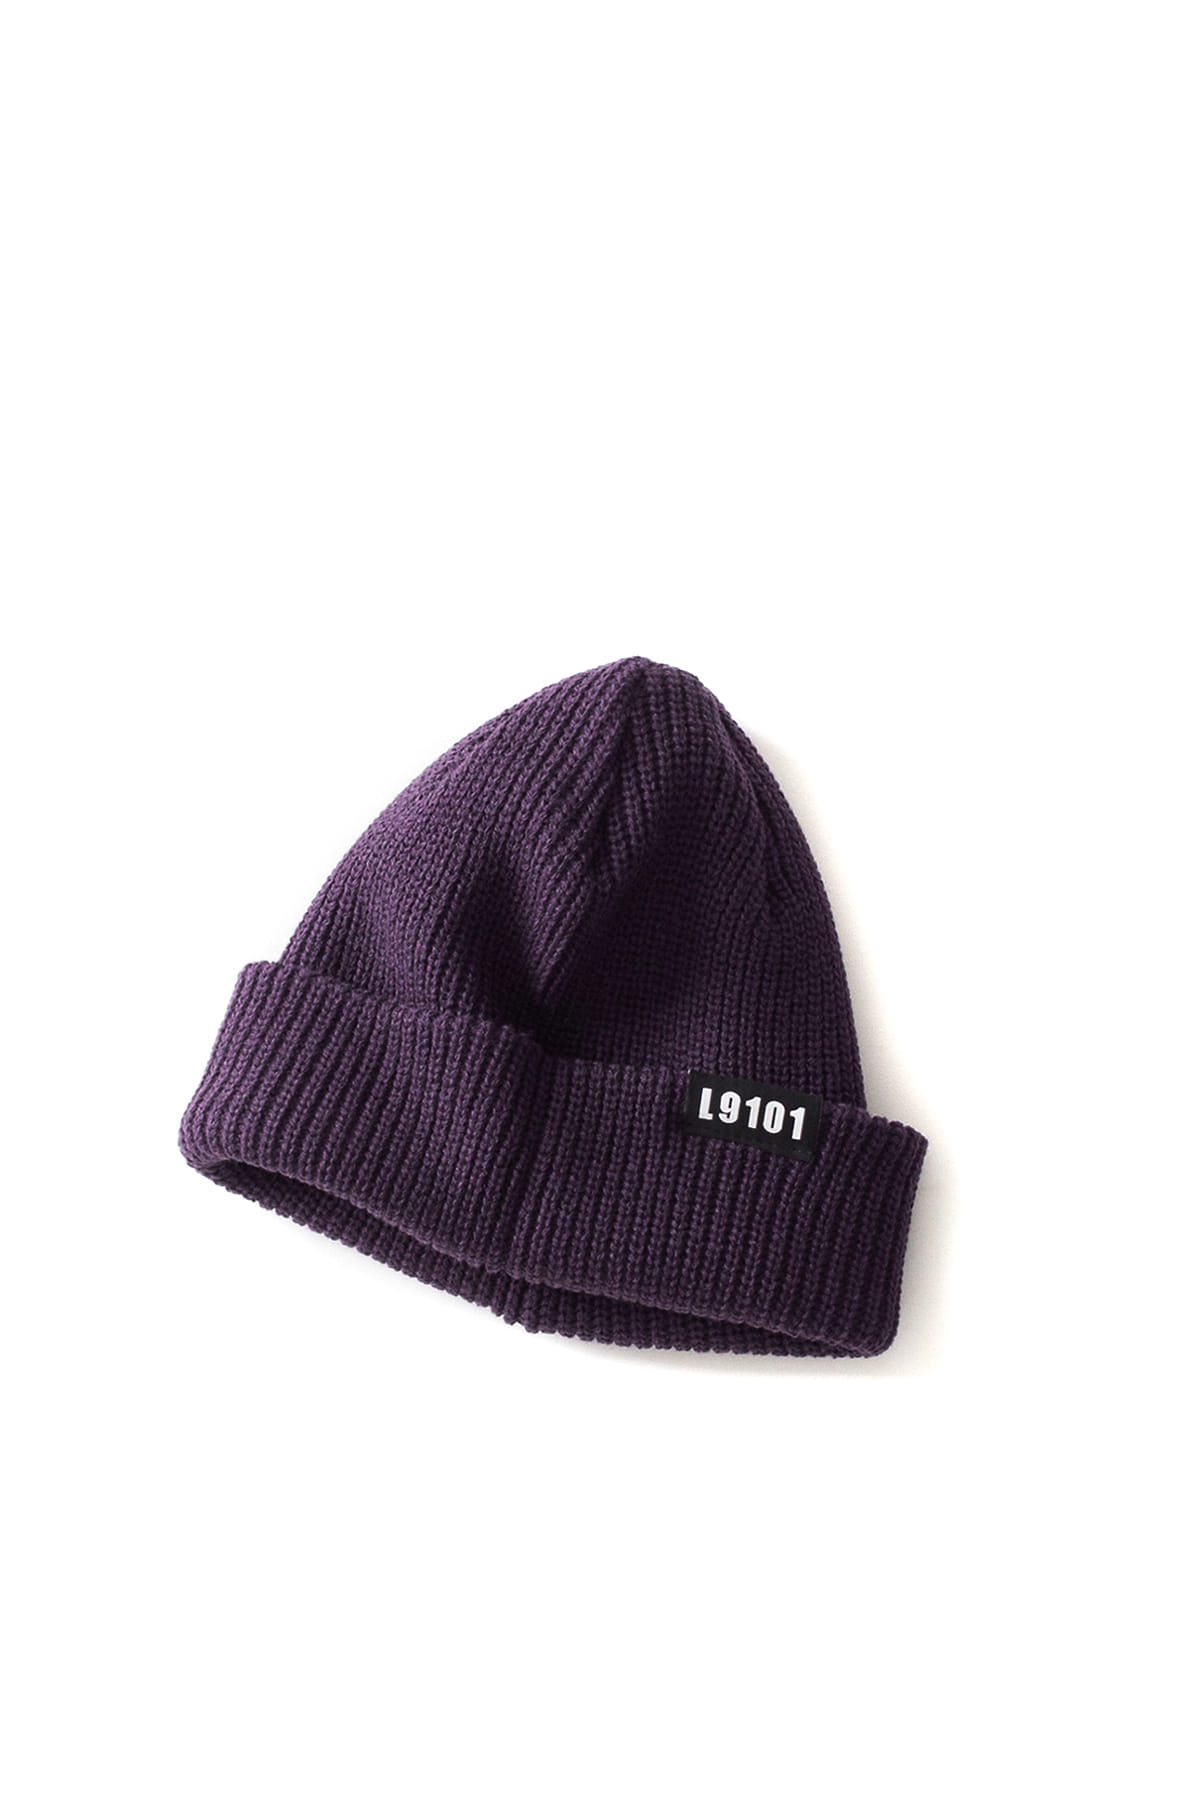 Labor Day : L9101 Beenie (Purple)